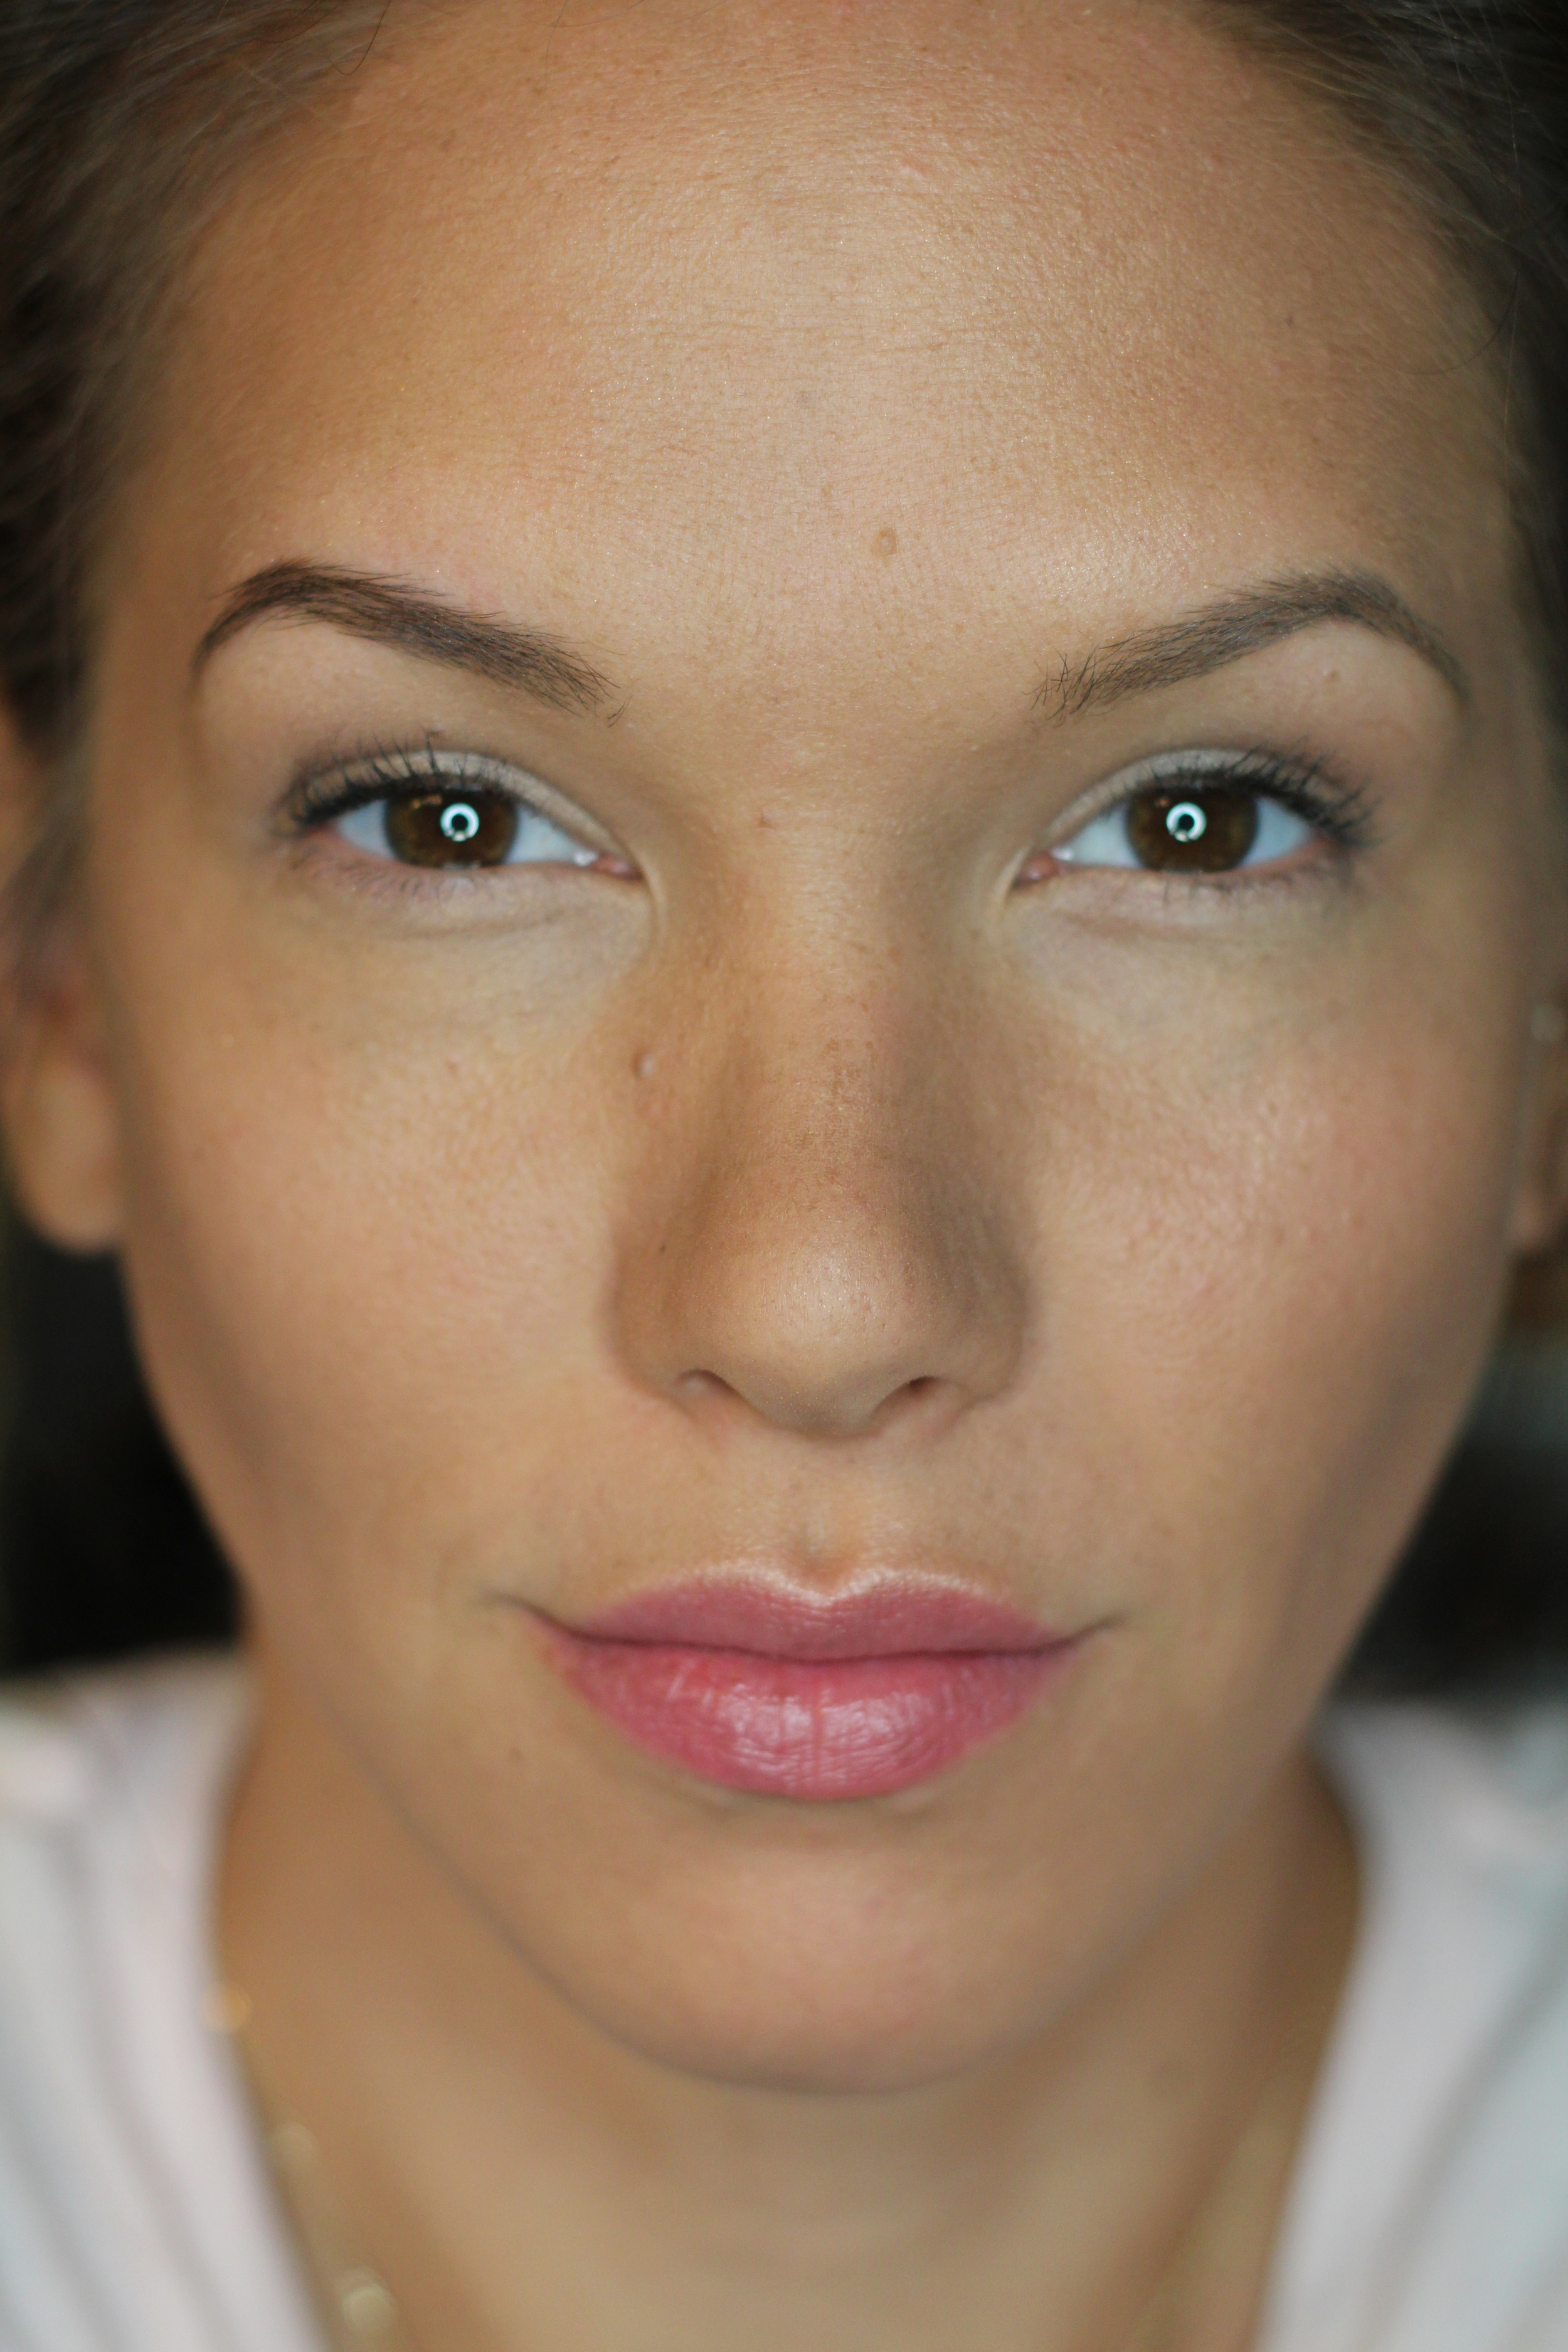 Powder Contour Application applied to the hollows of the cheeks, bridge of the nose, hairline and jaw line.